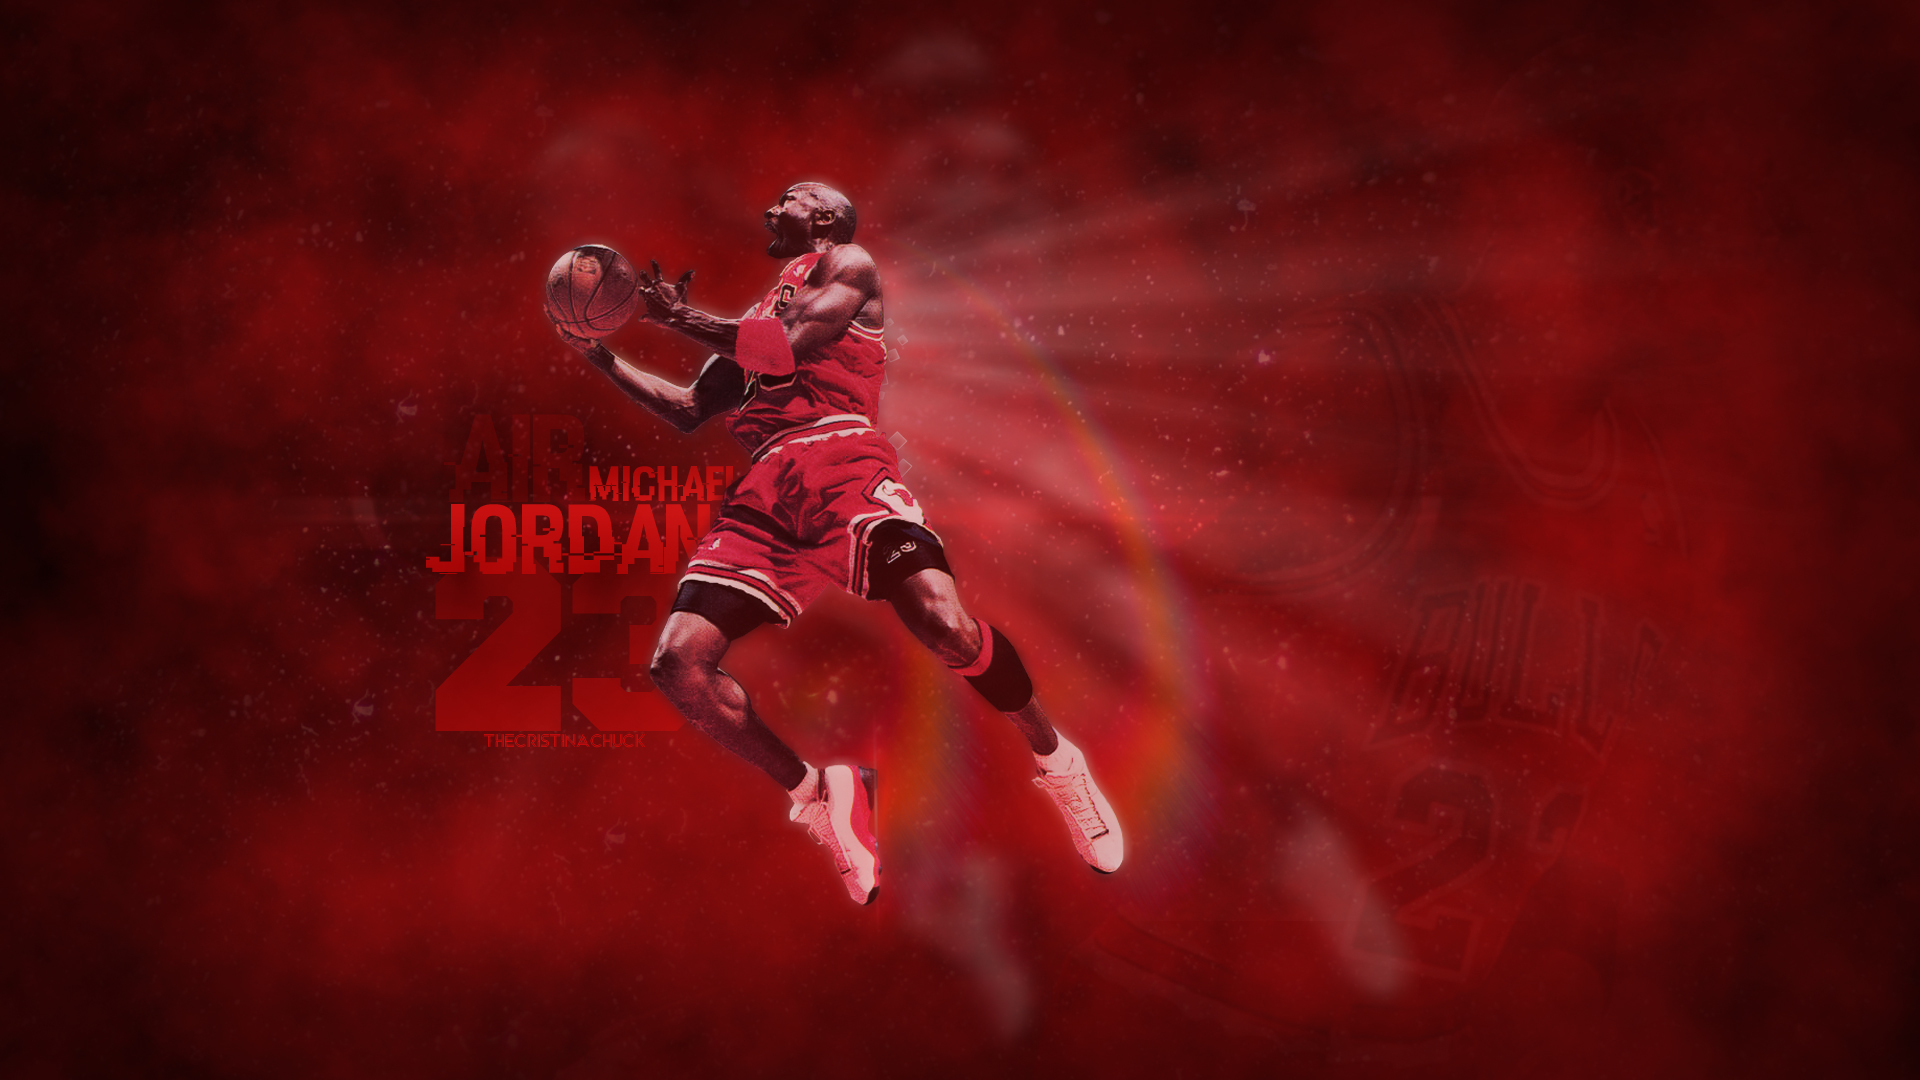 Wallpaper Michael Jordan 23 By Thecristinachuck On Deviantart